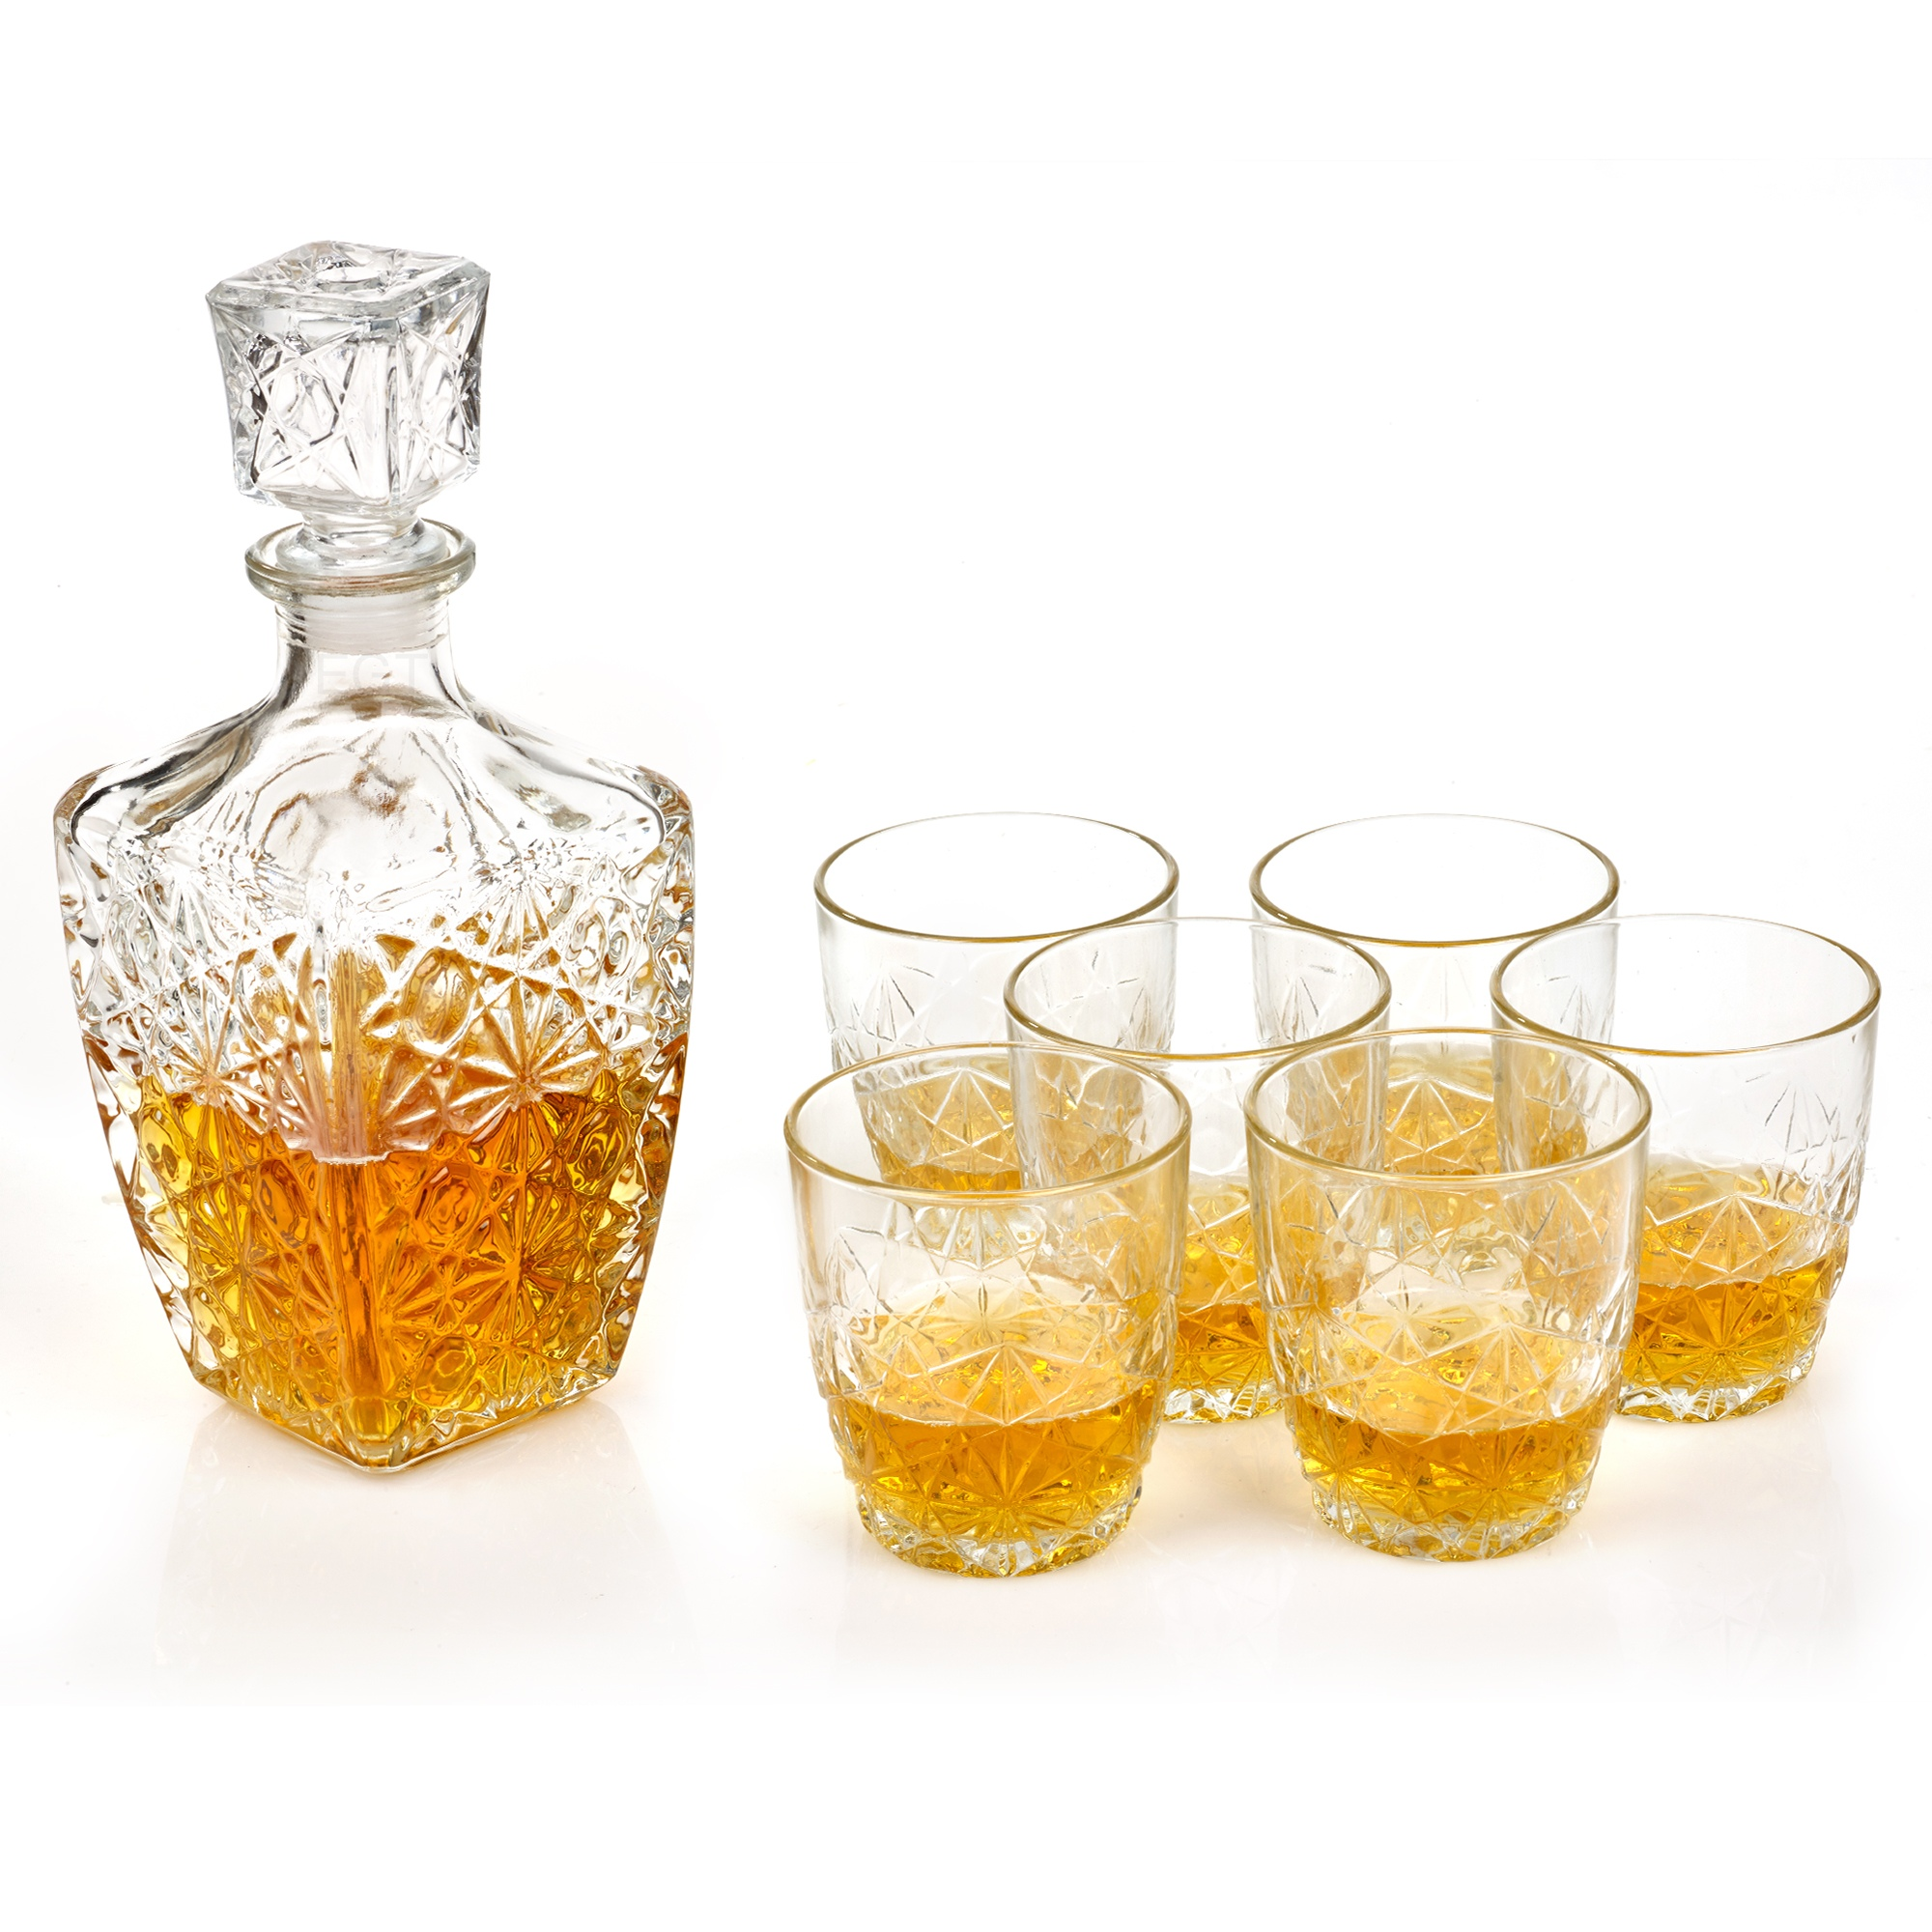 Glass Cracked Safe To Drink From